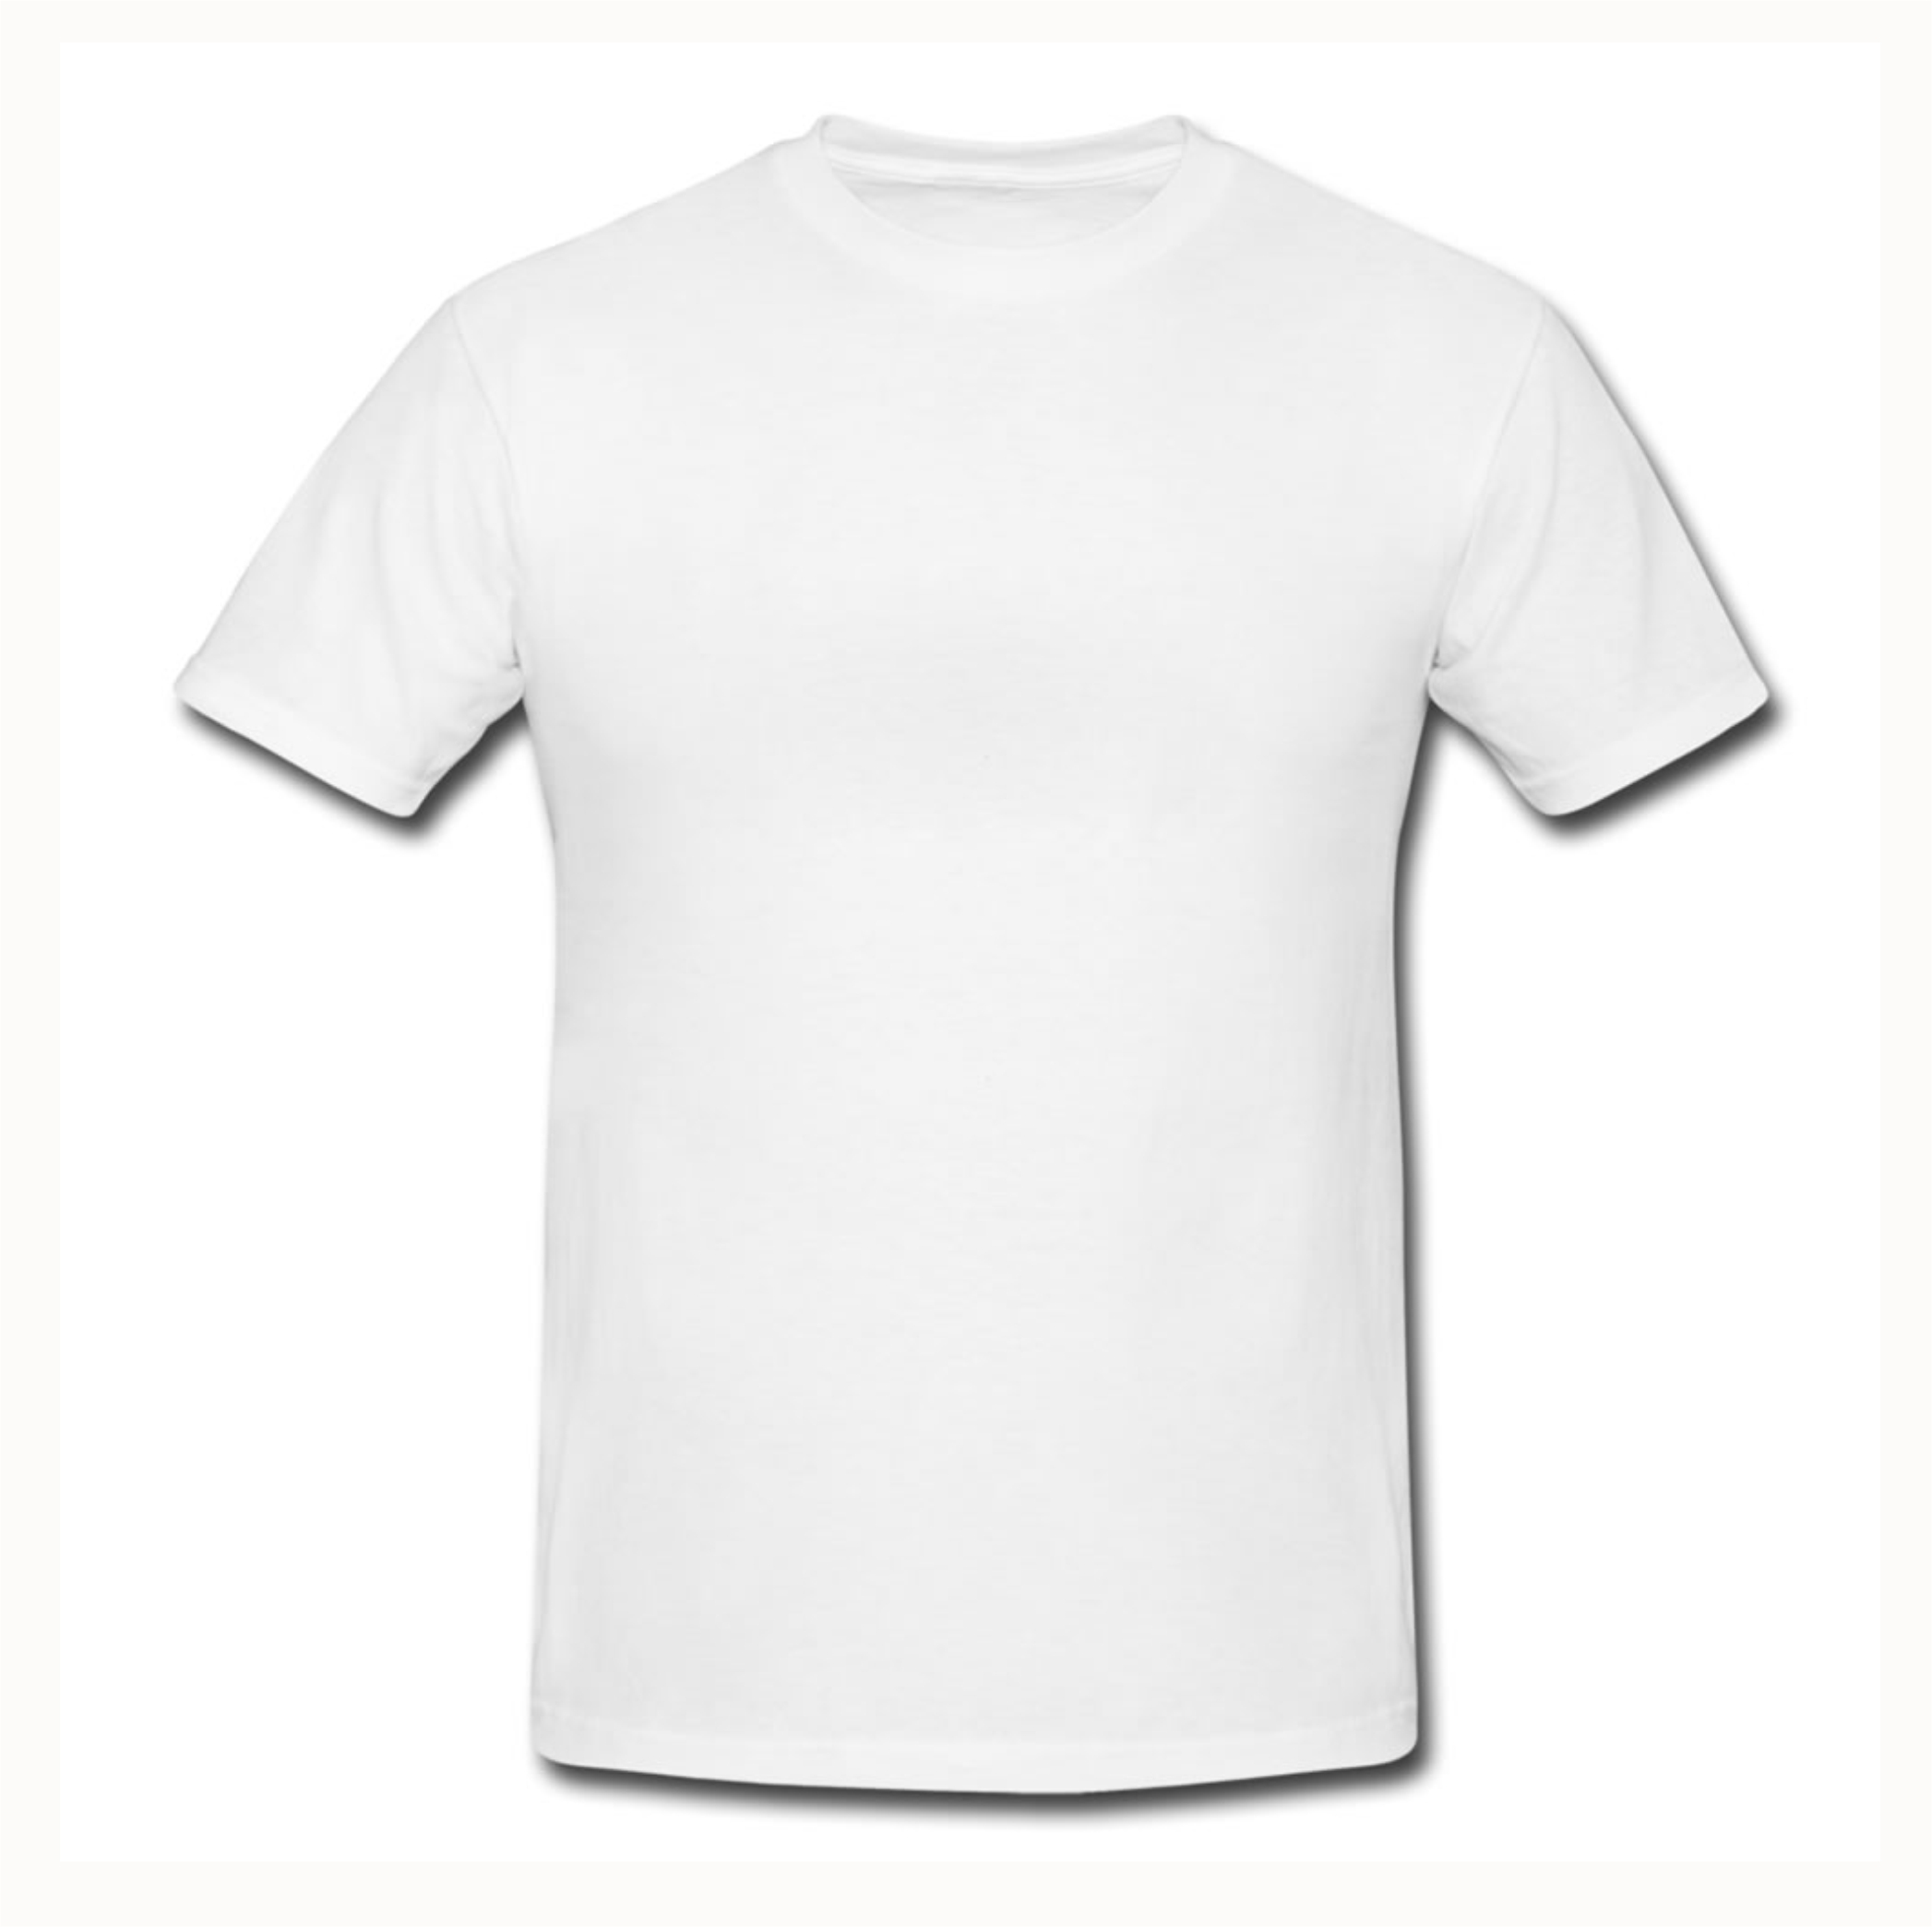 plain white t shirt crested school wear